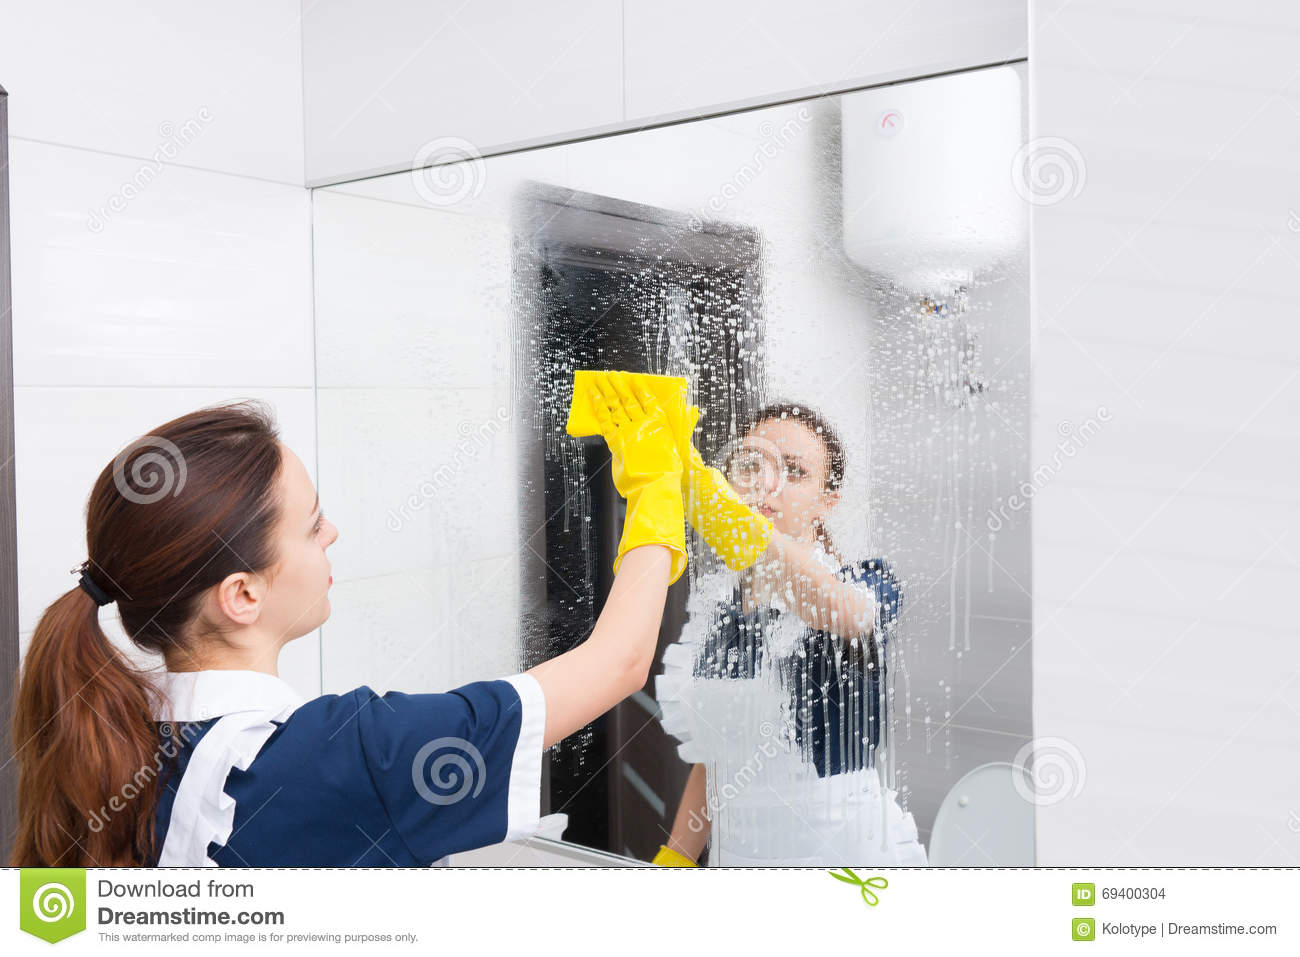 Housekeeper or maid cleaning a large wall mirror